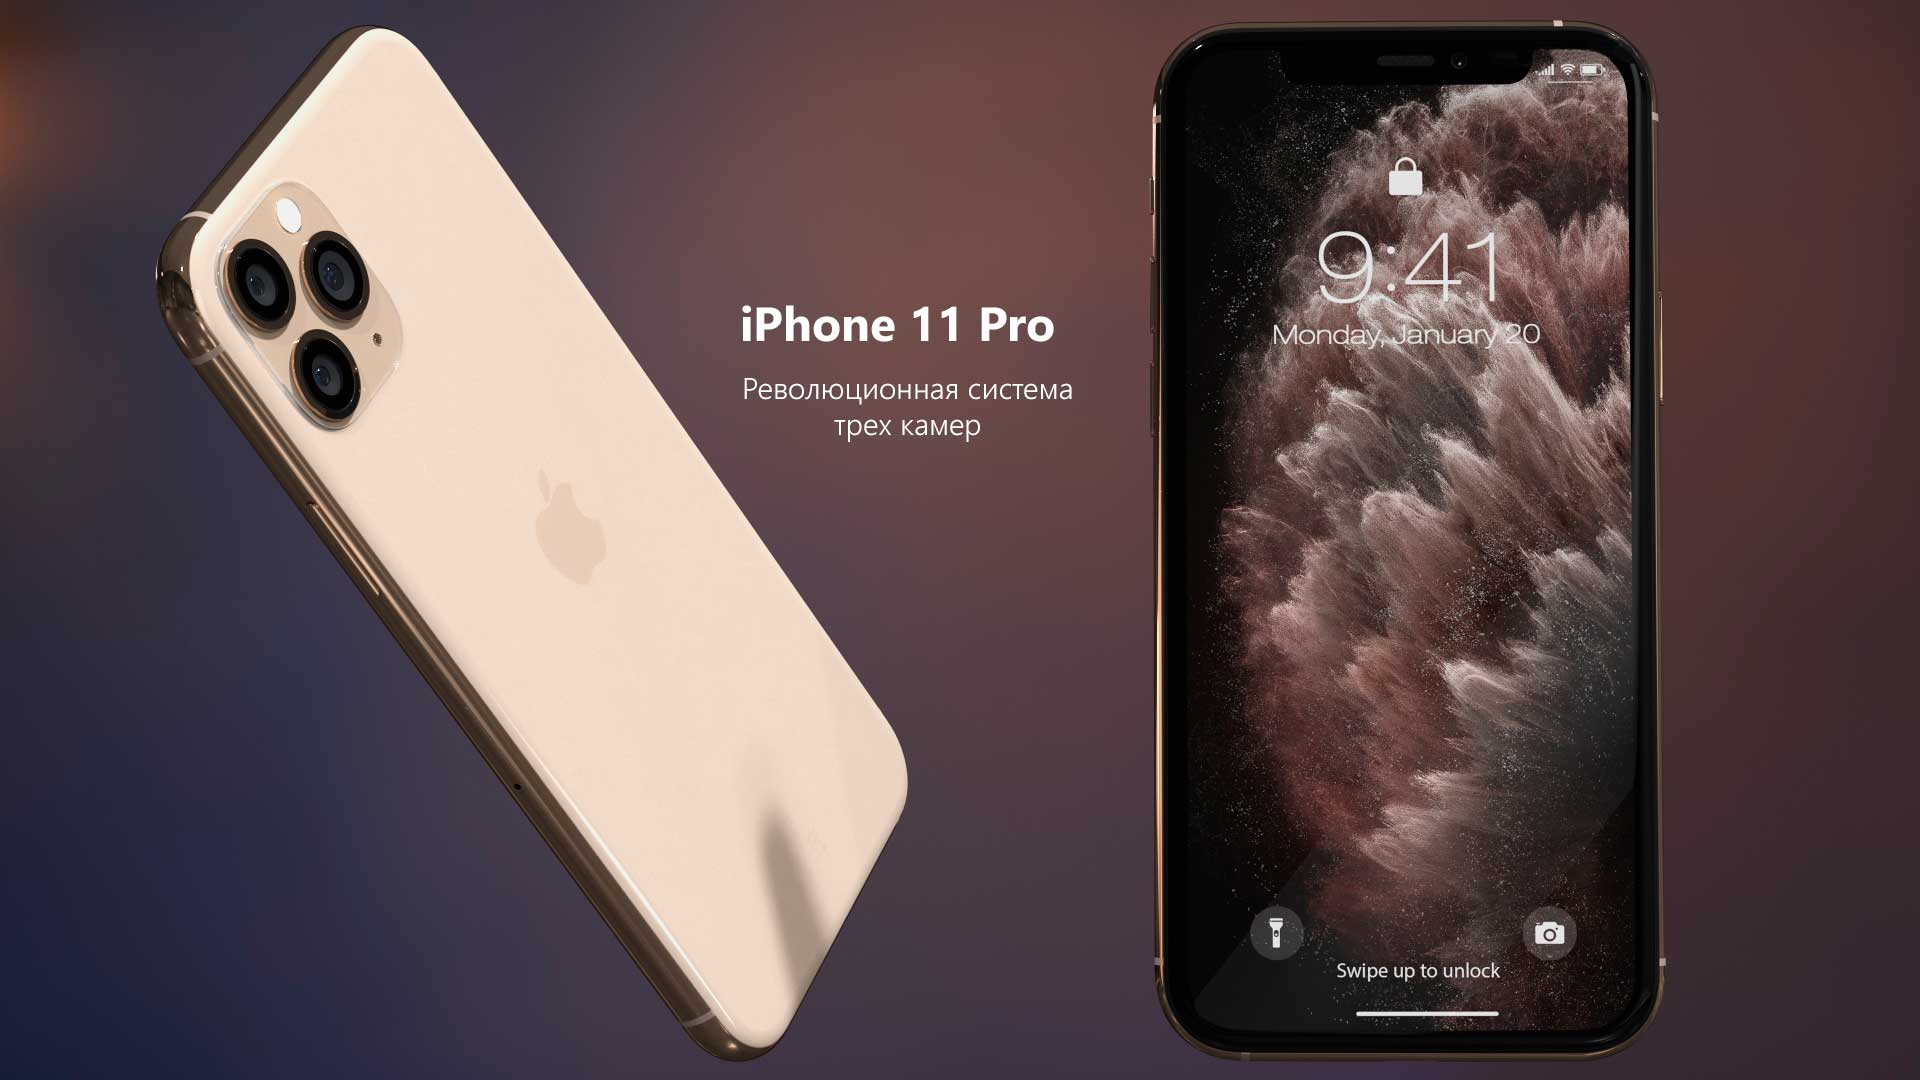 iPhone 11 Pro Gold - революционная система трех камер